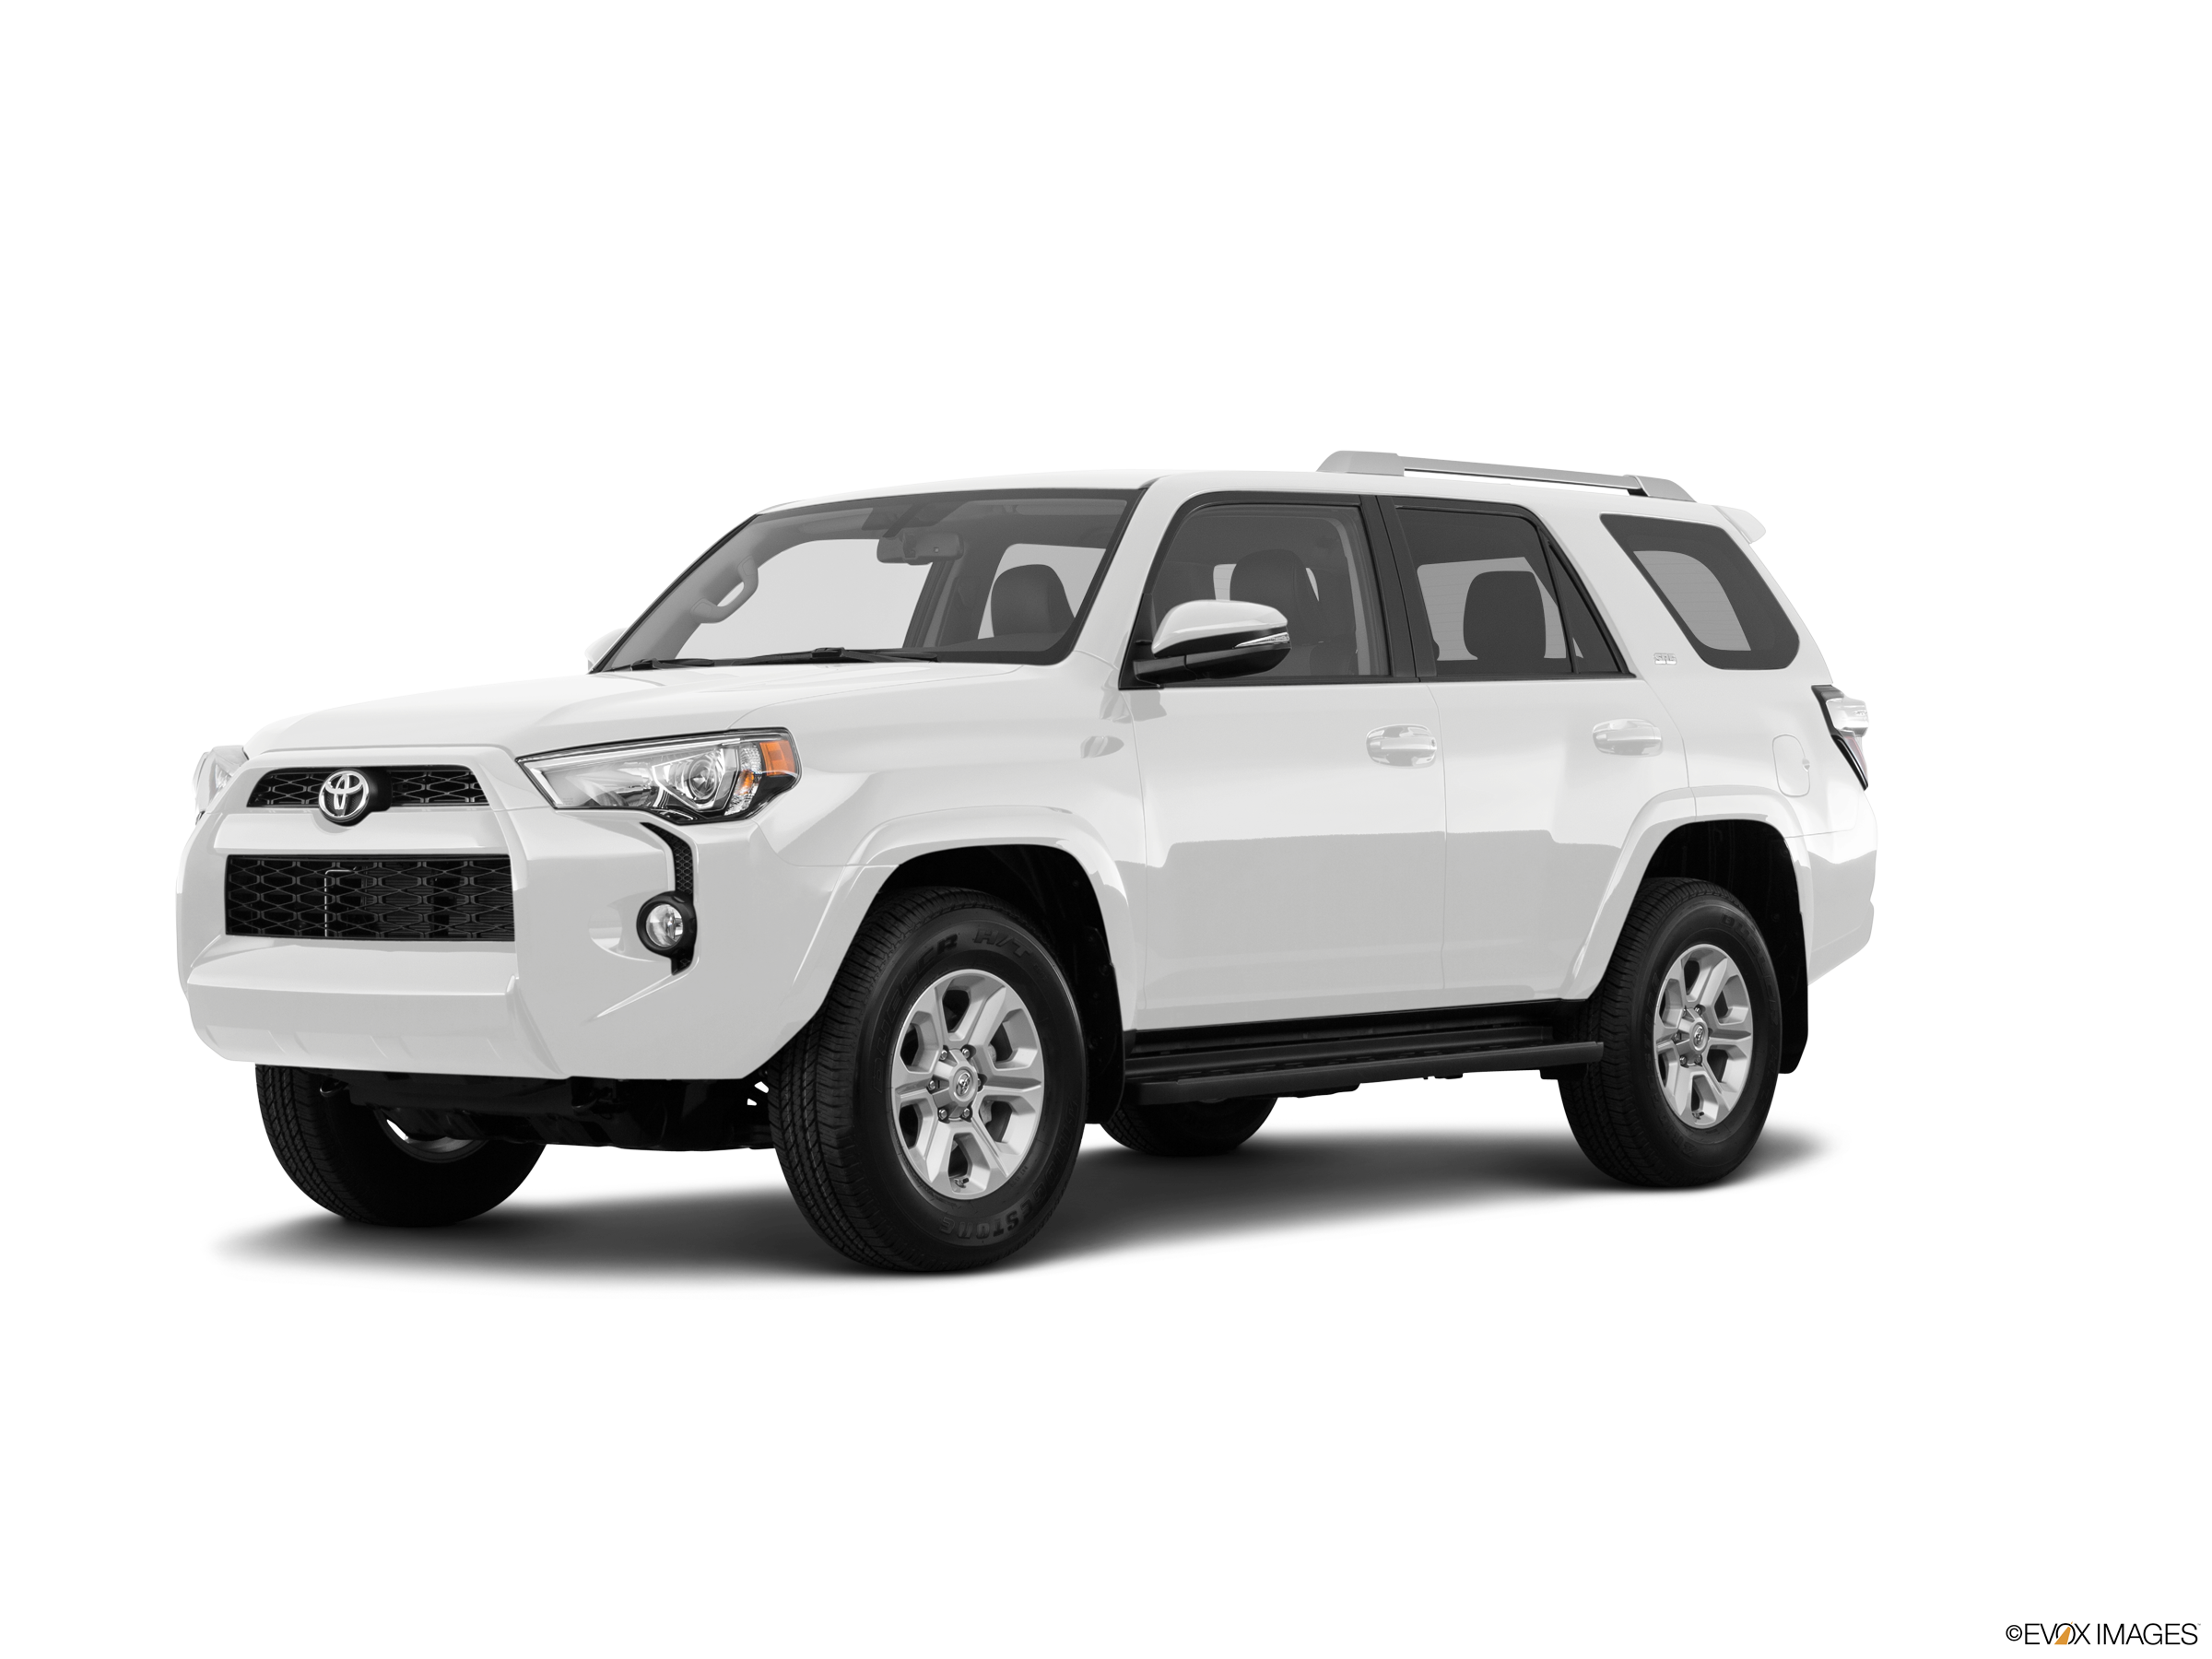 25 Best-Selling SUVs of 2018 - Toyota 4Runner